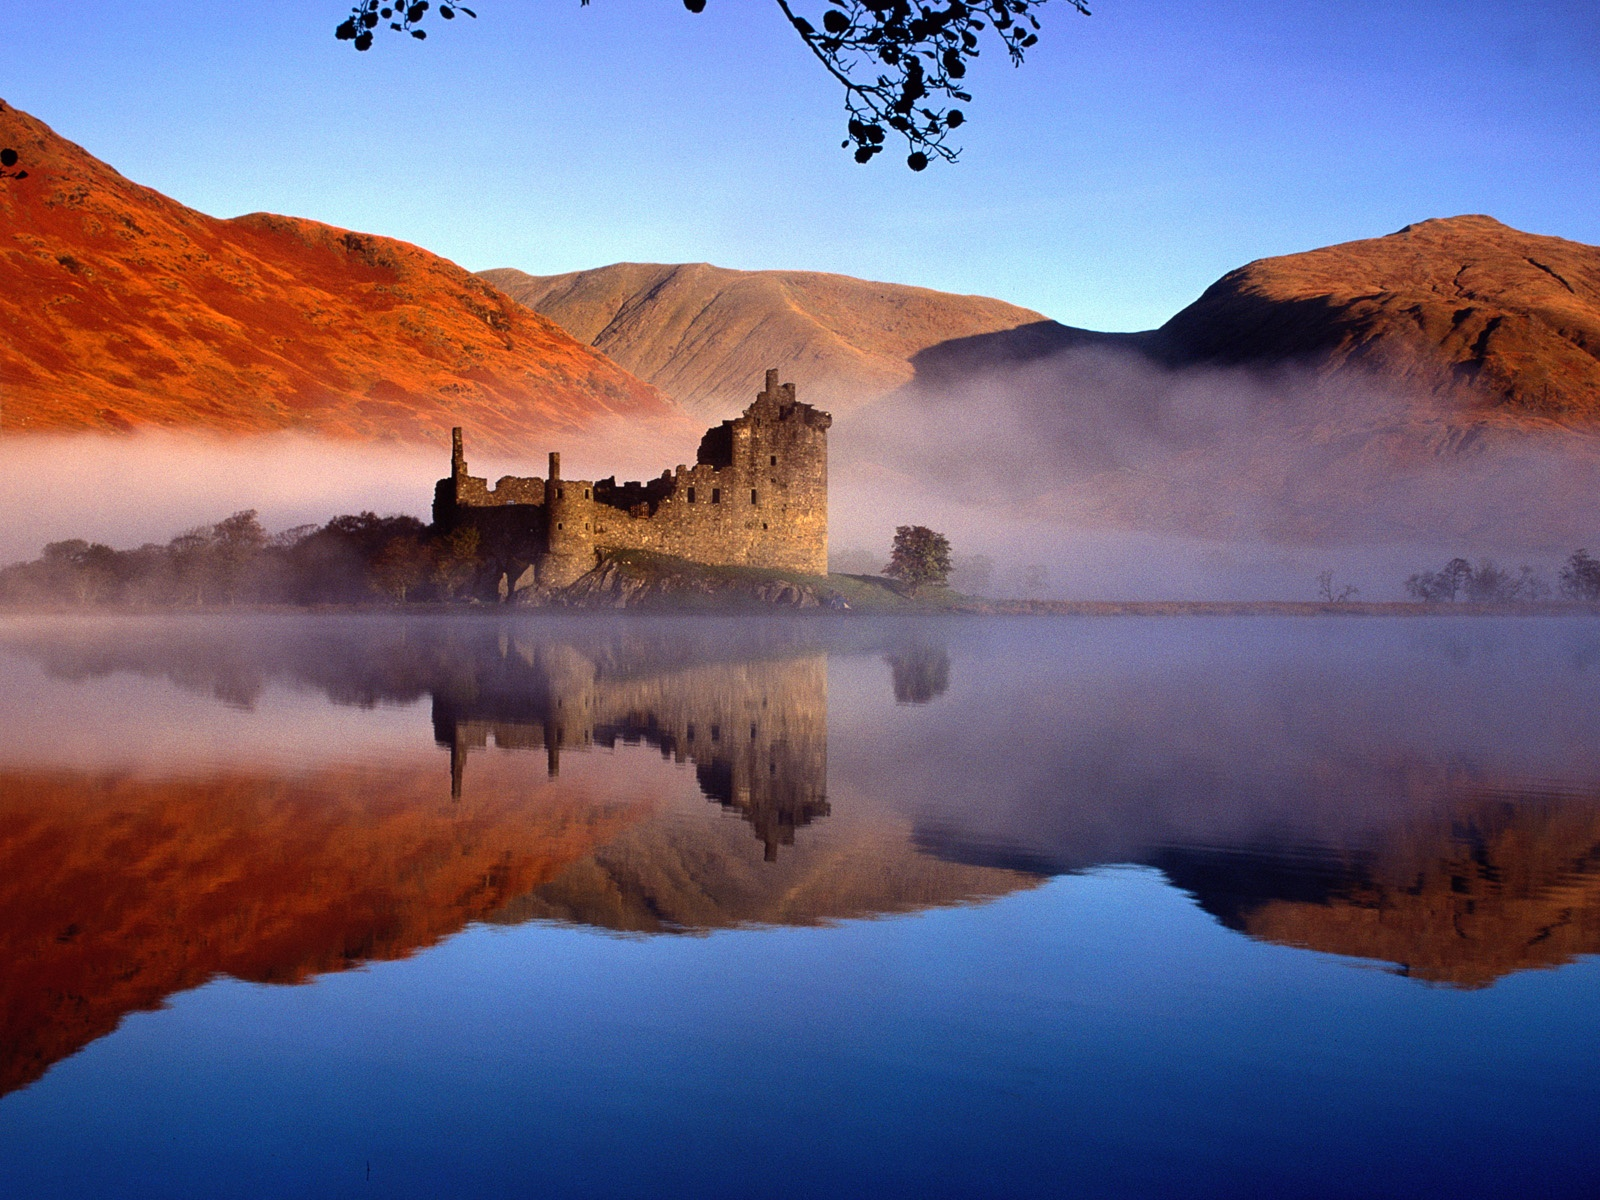 Castle in Scotland wallpaper 1600x1200.